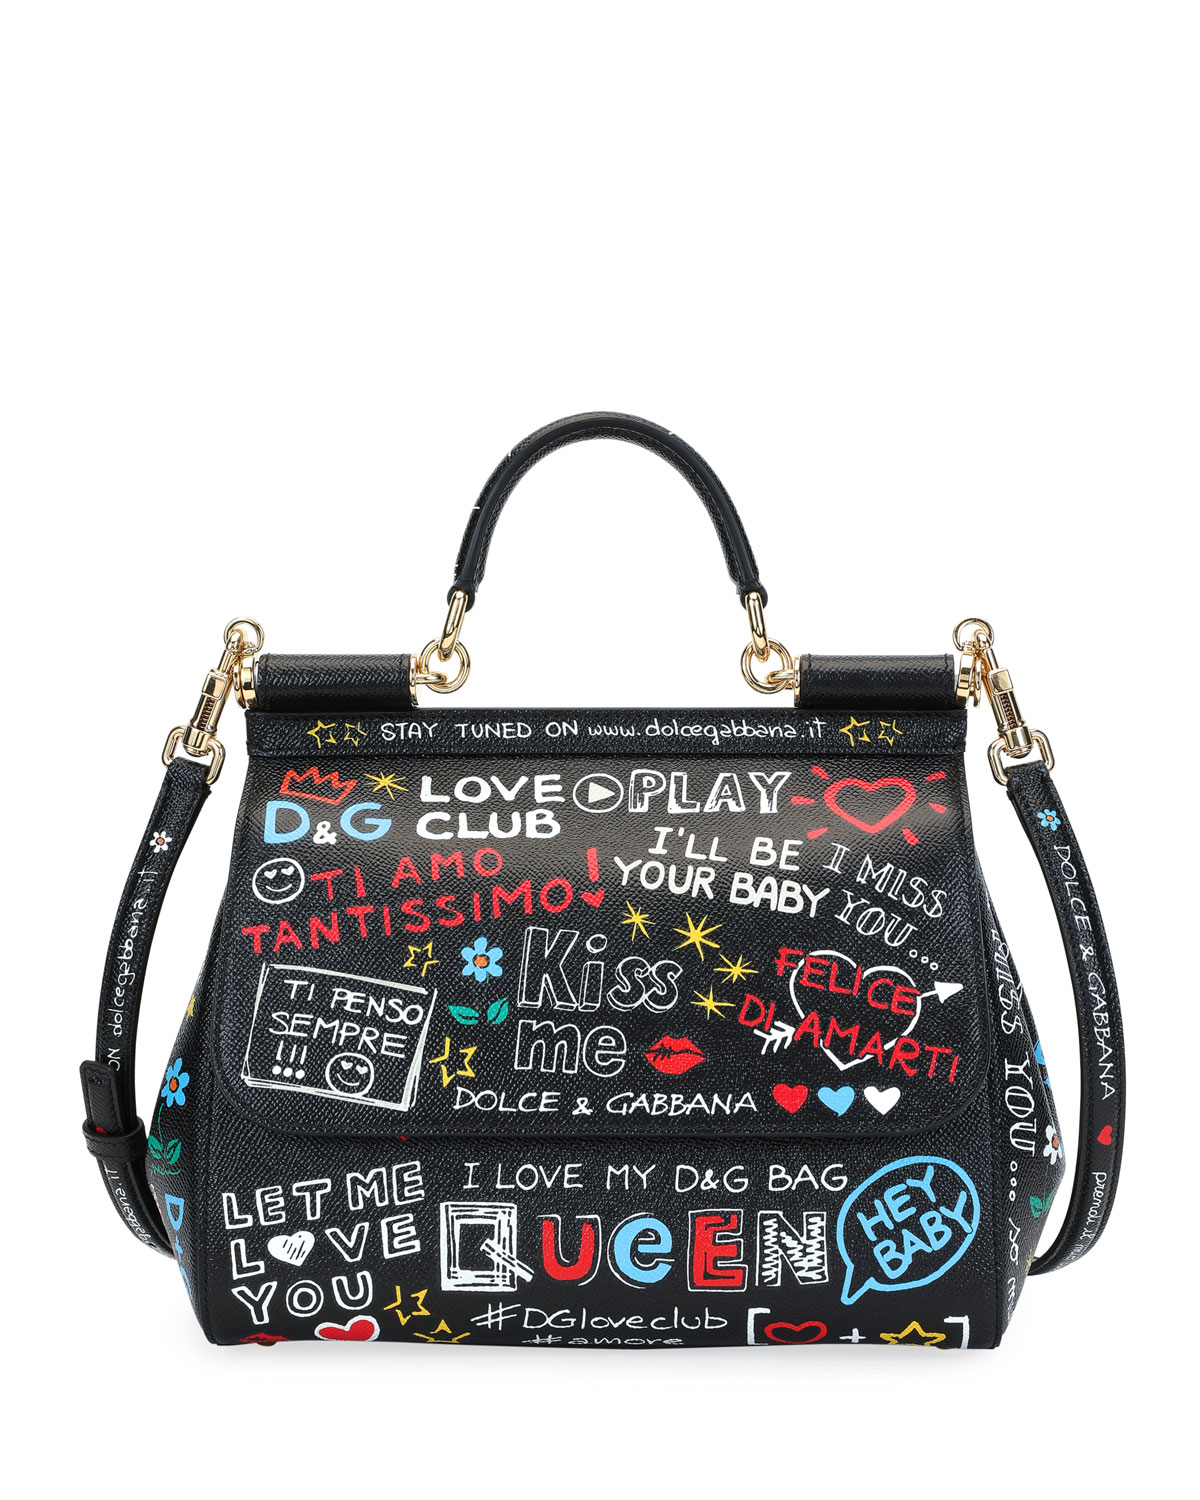 22a90dfa6754 Dolce   Gabbana Sicily St. Dauphine Medium Graffiti Top Handle Bag ...